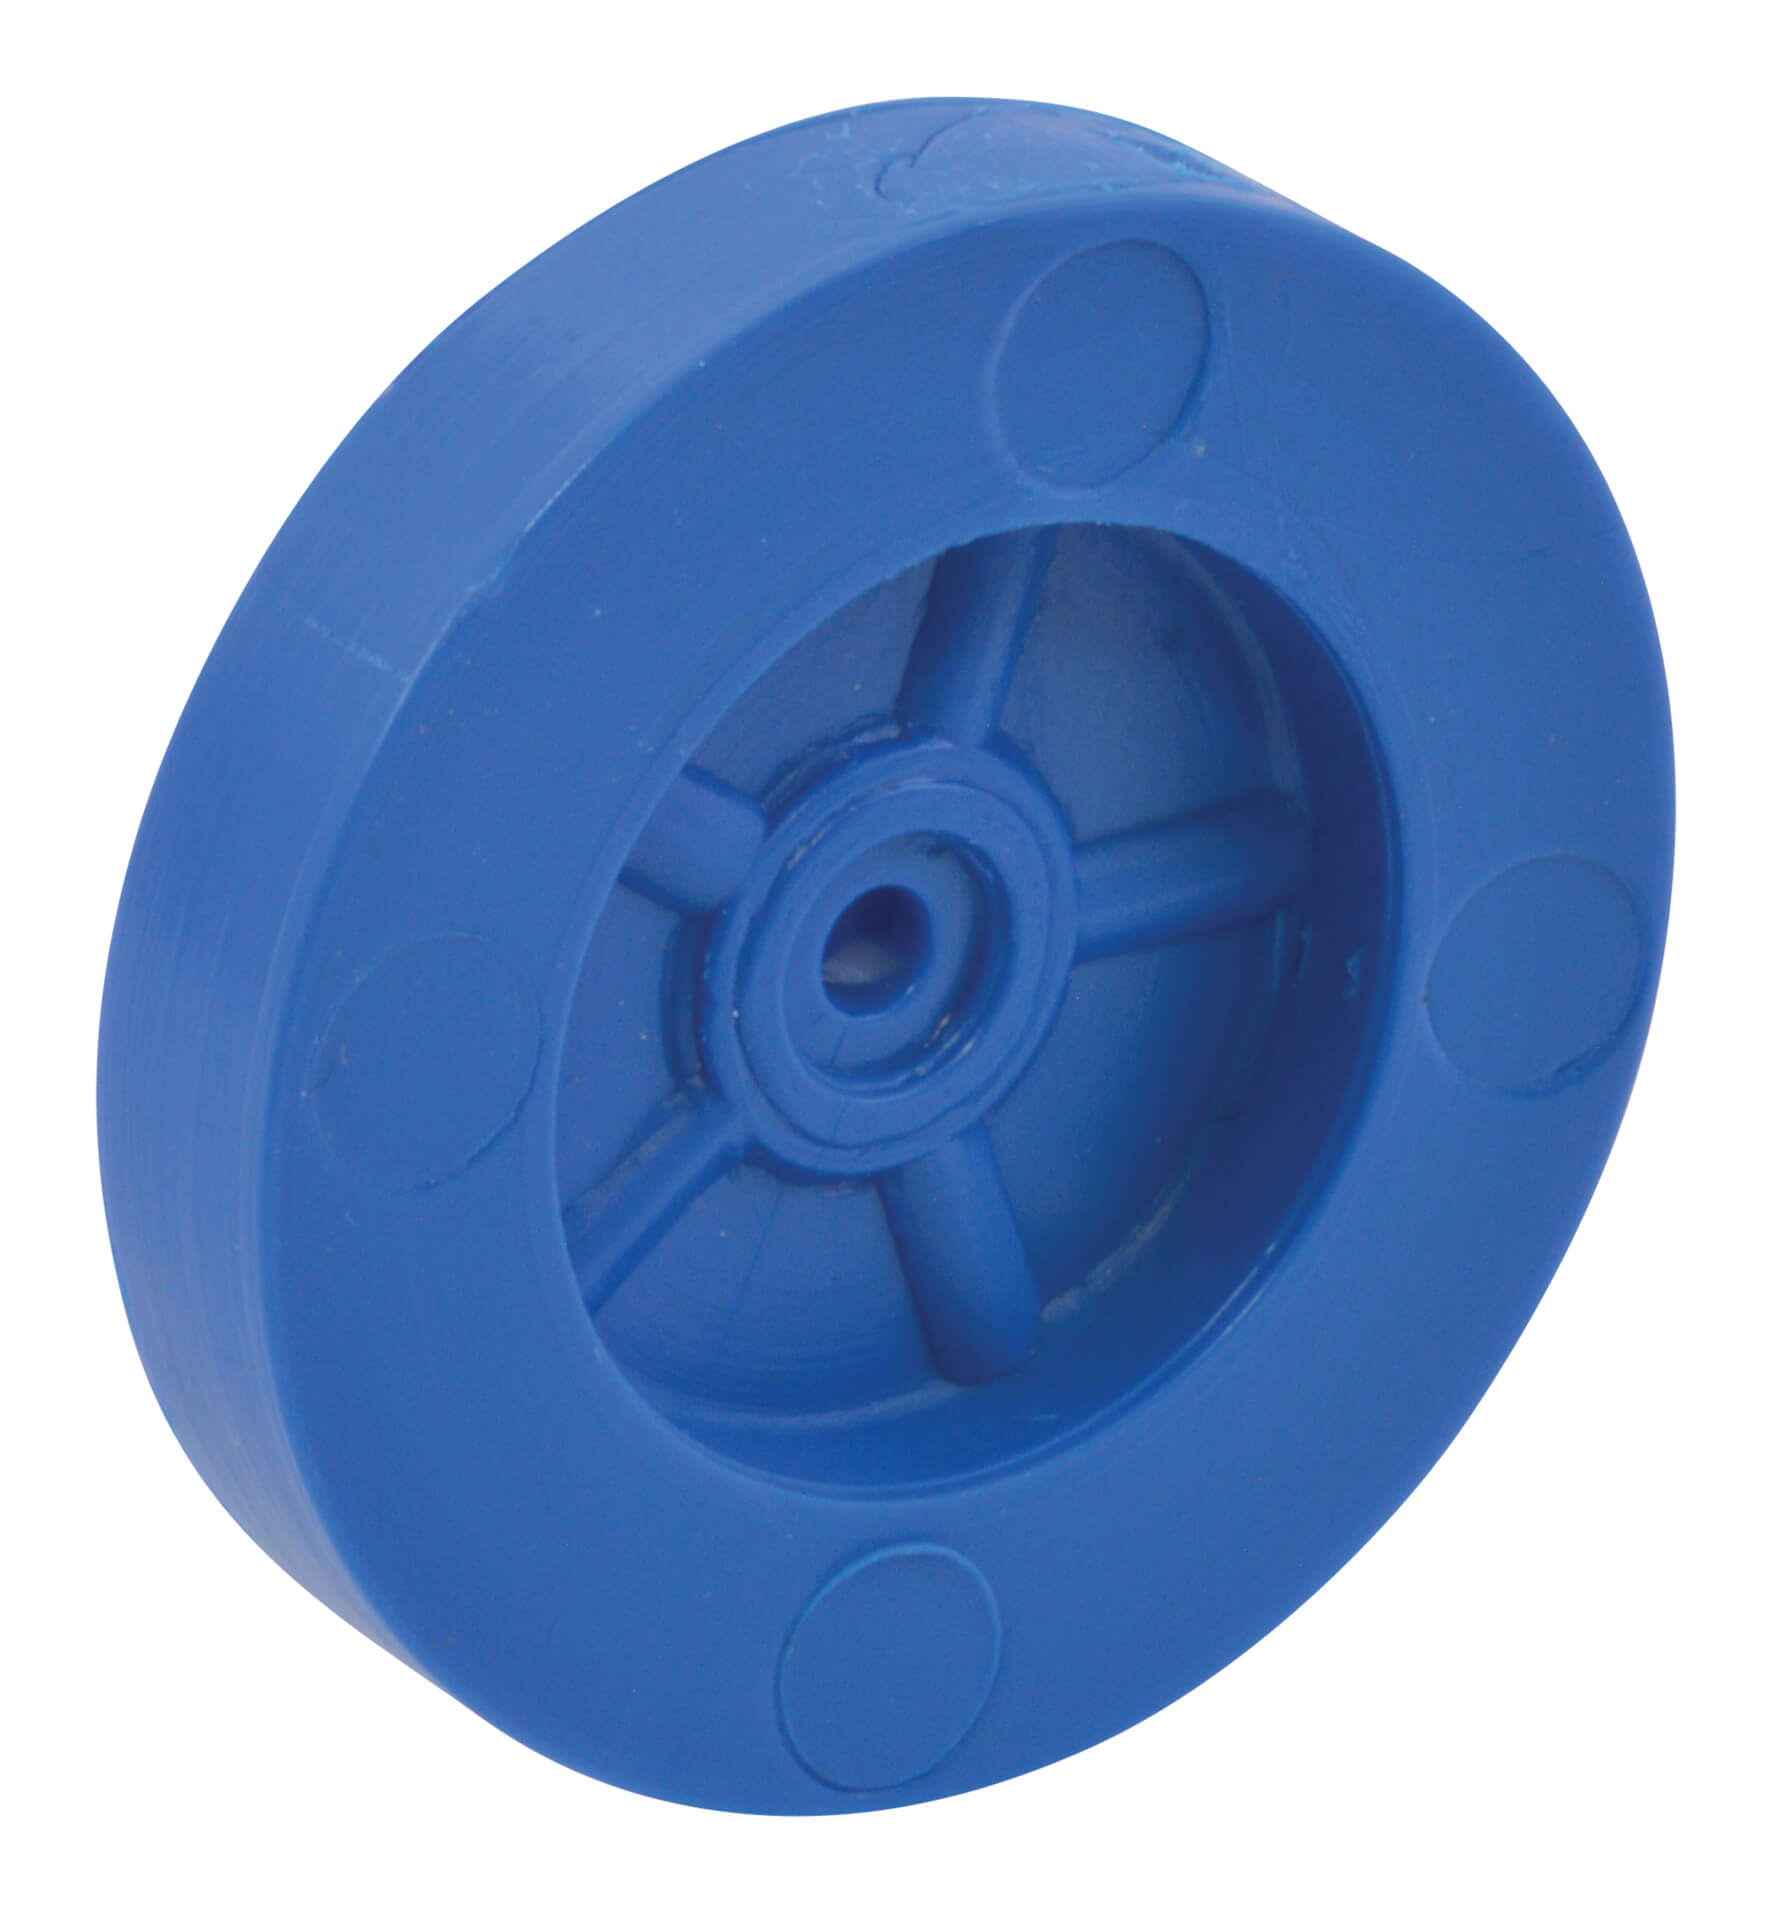 Blue 39mm Polythene Wheels – Pack Of 100